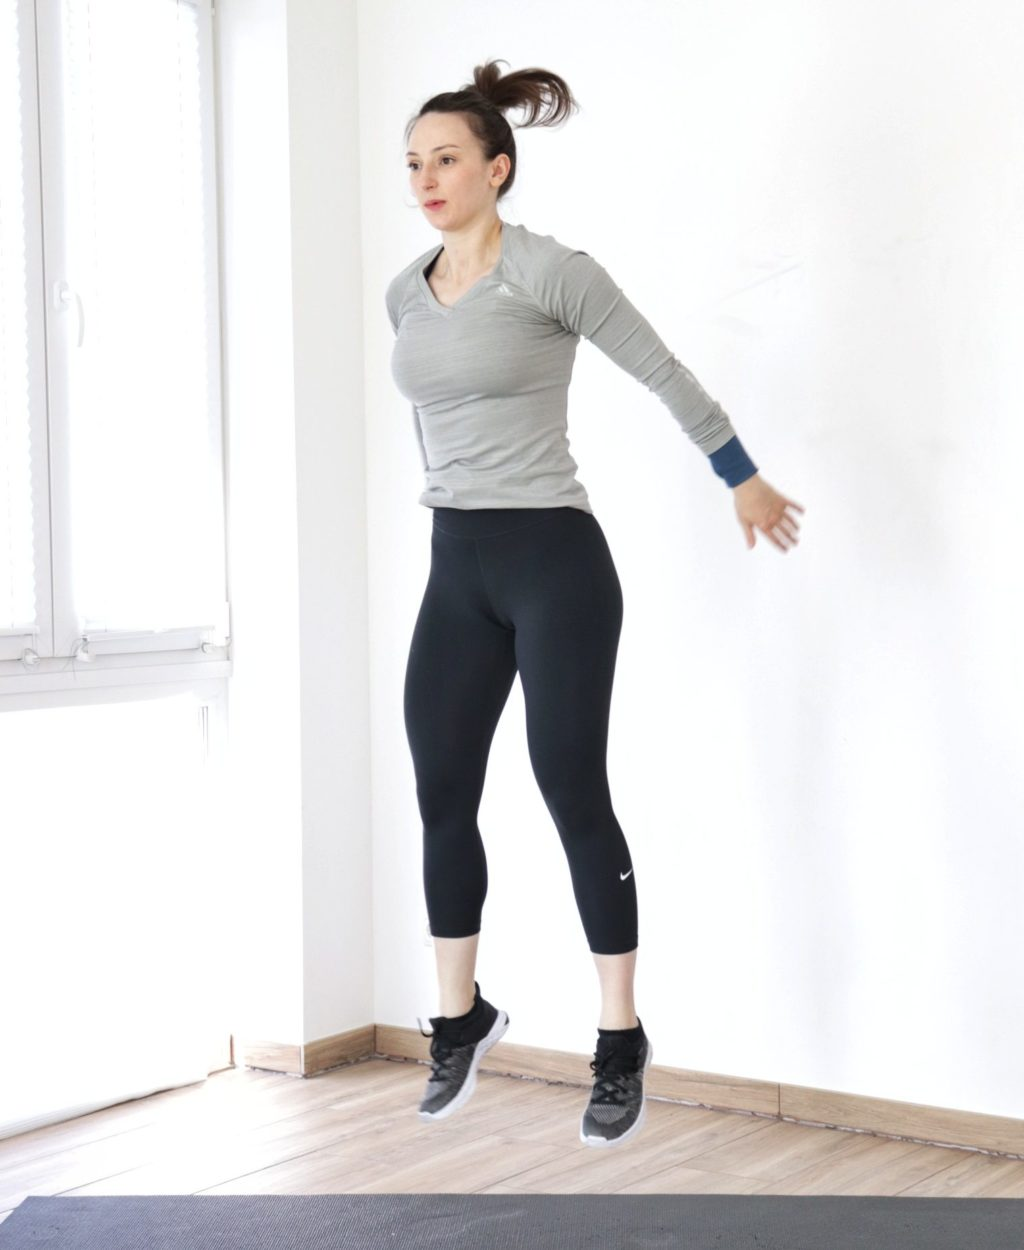 girl jumping up while exercising